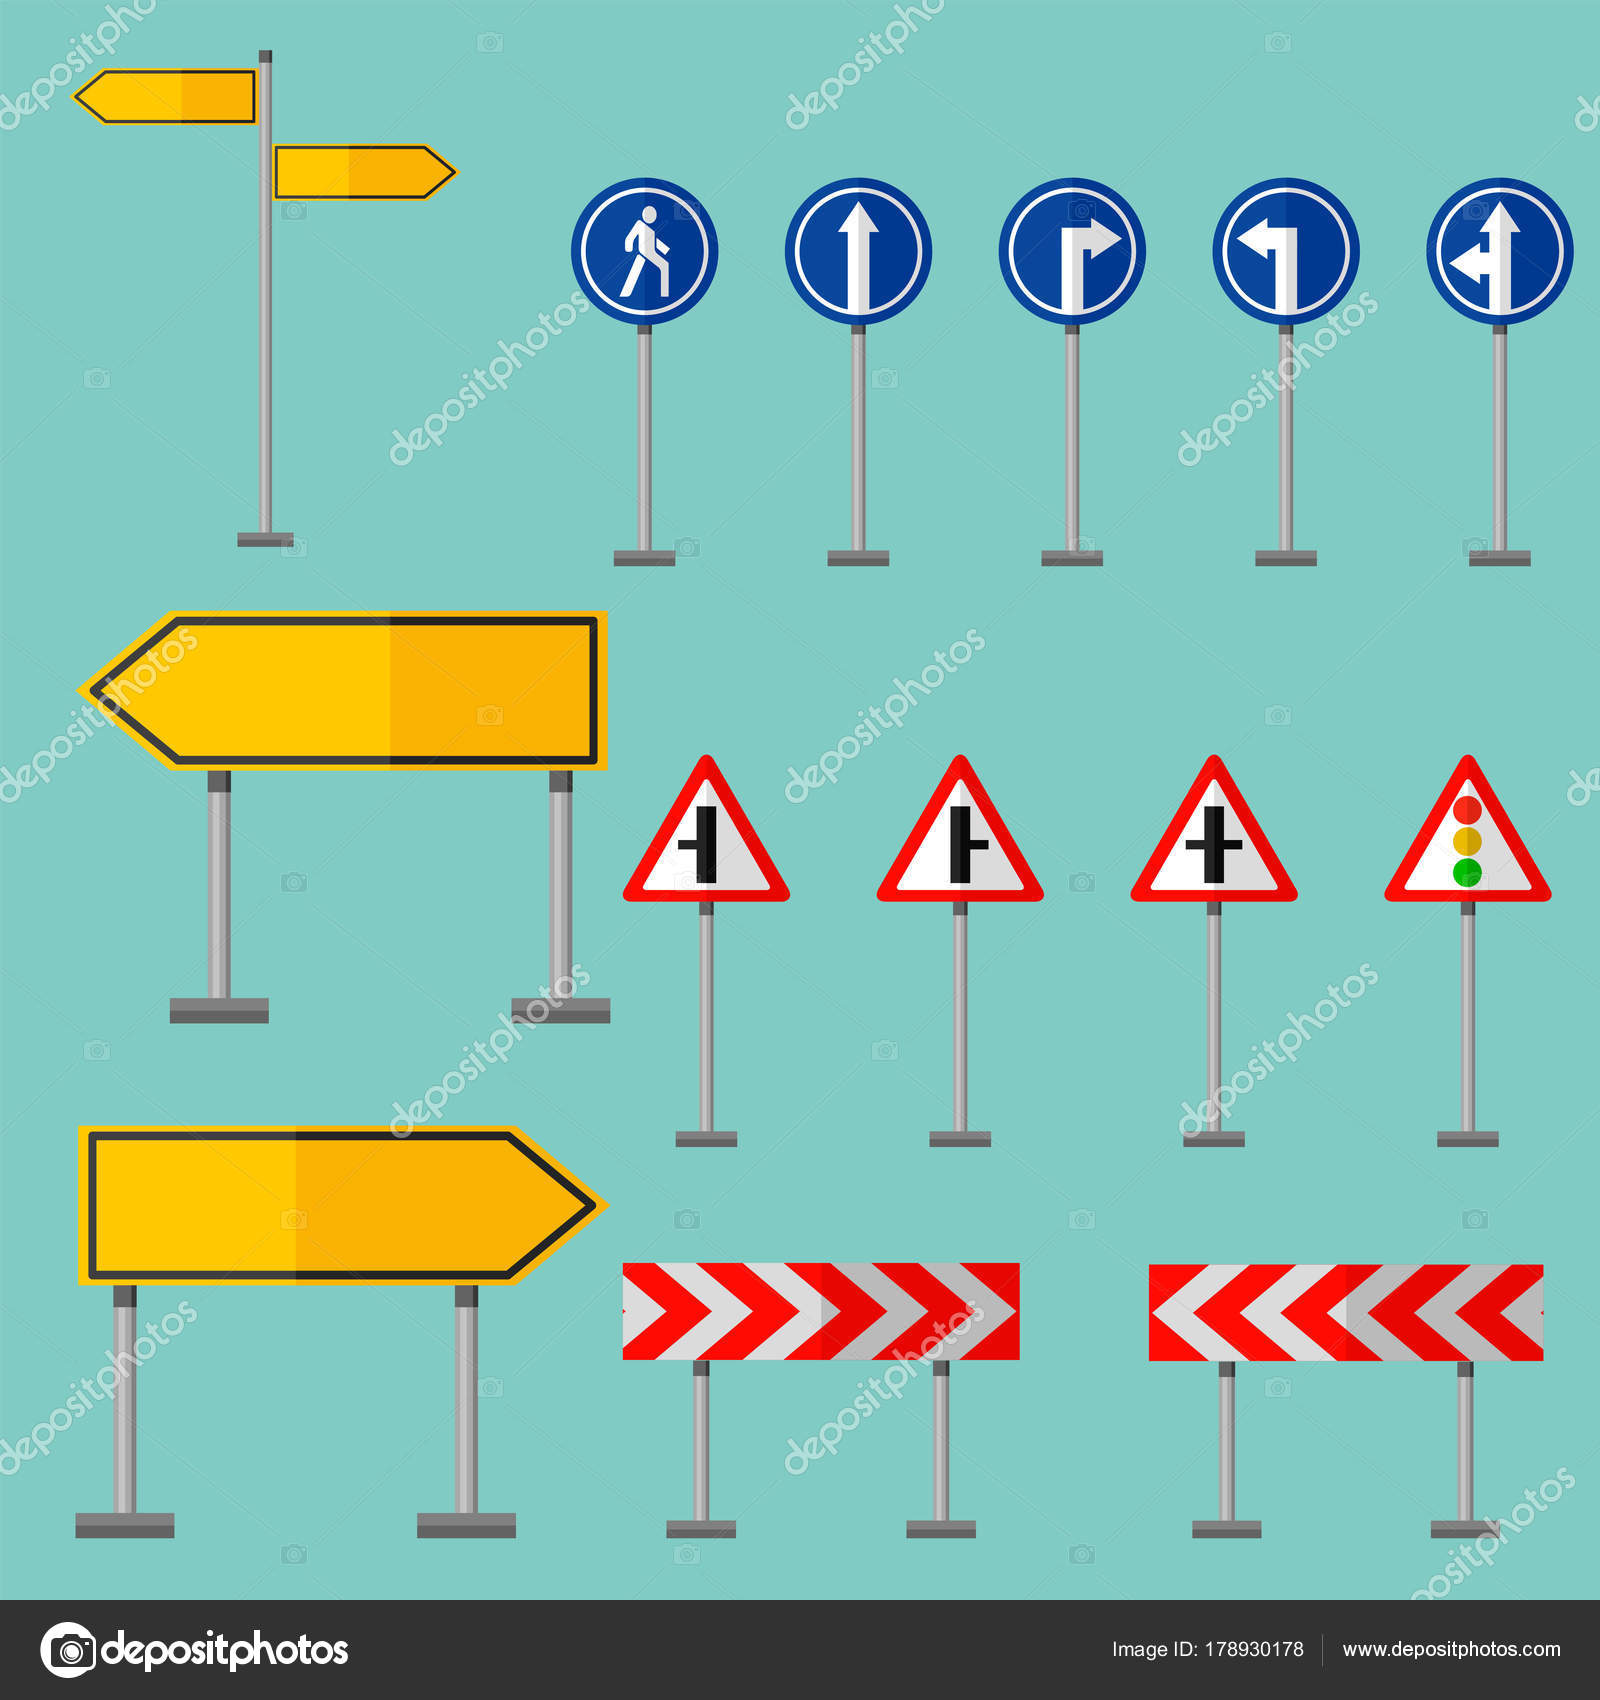 road symbols traffic signs graphic elements information vector